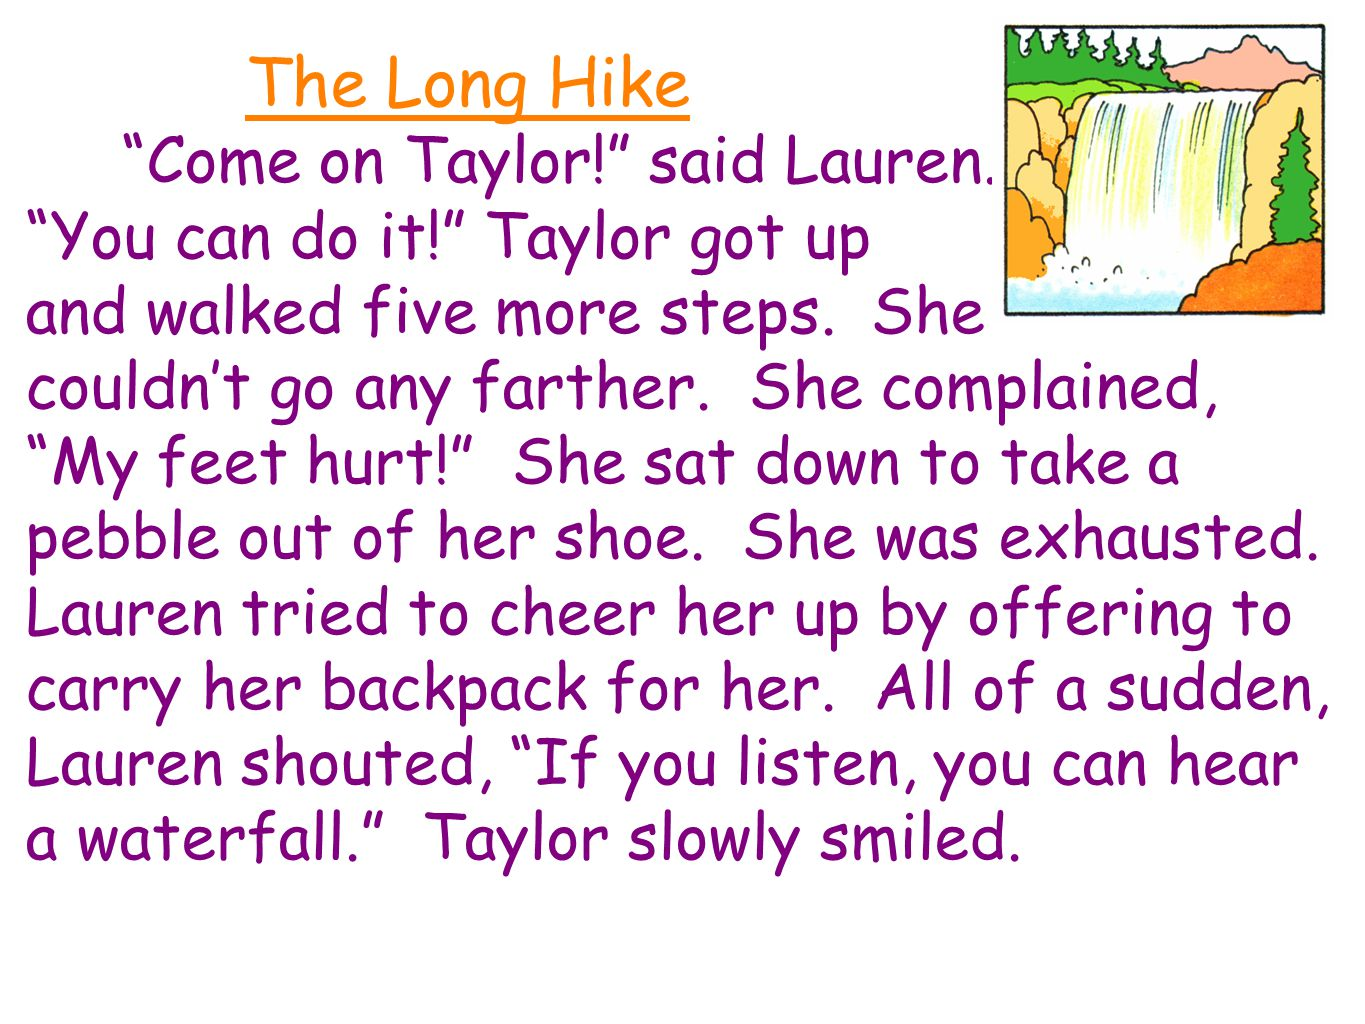 The Long Hike Come on Taylor! said Lauren.